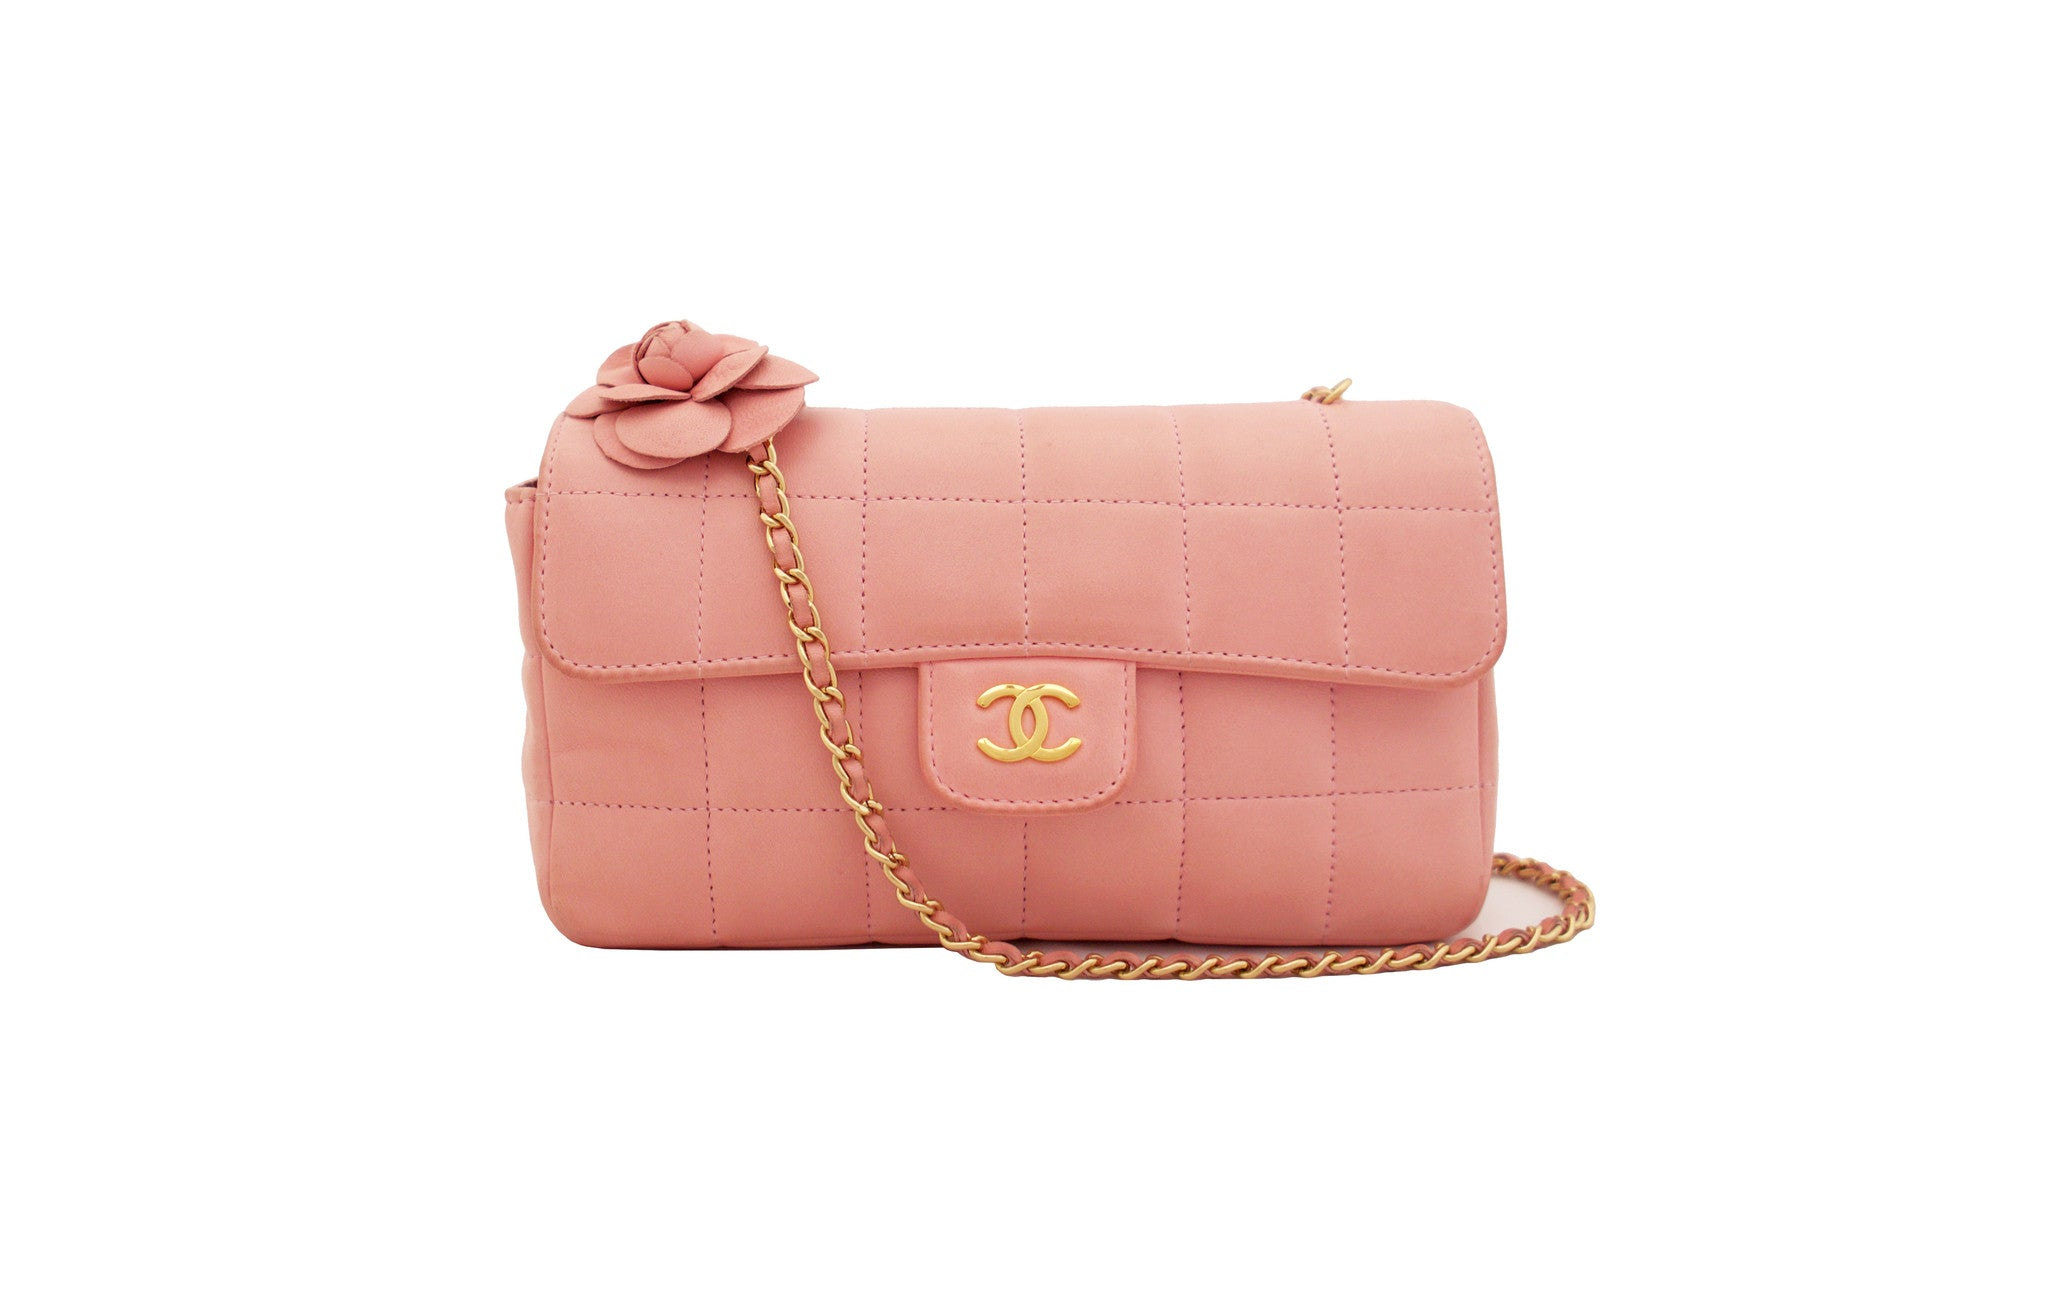 57fbf0b080f3 CHANEL VINTAGE BAG - Mini Flap Camellia in Pink ...